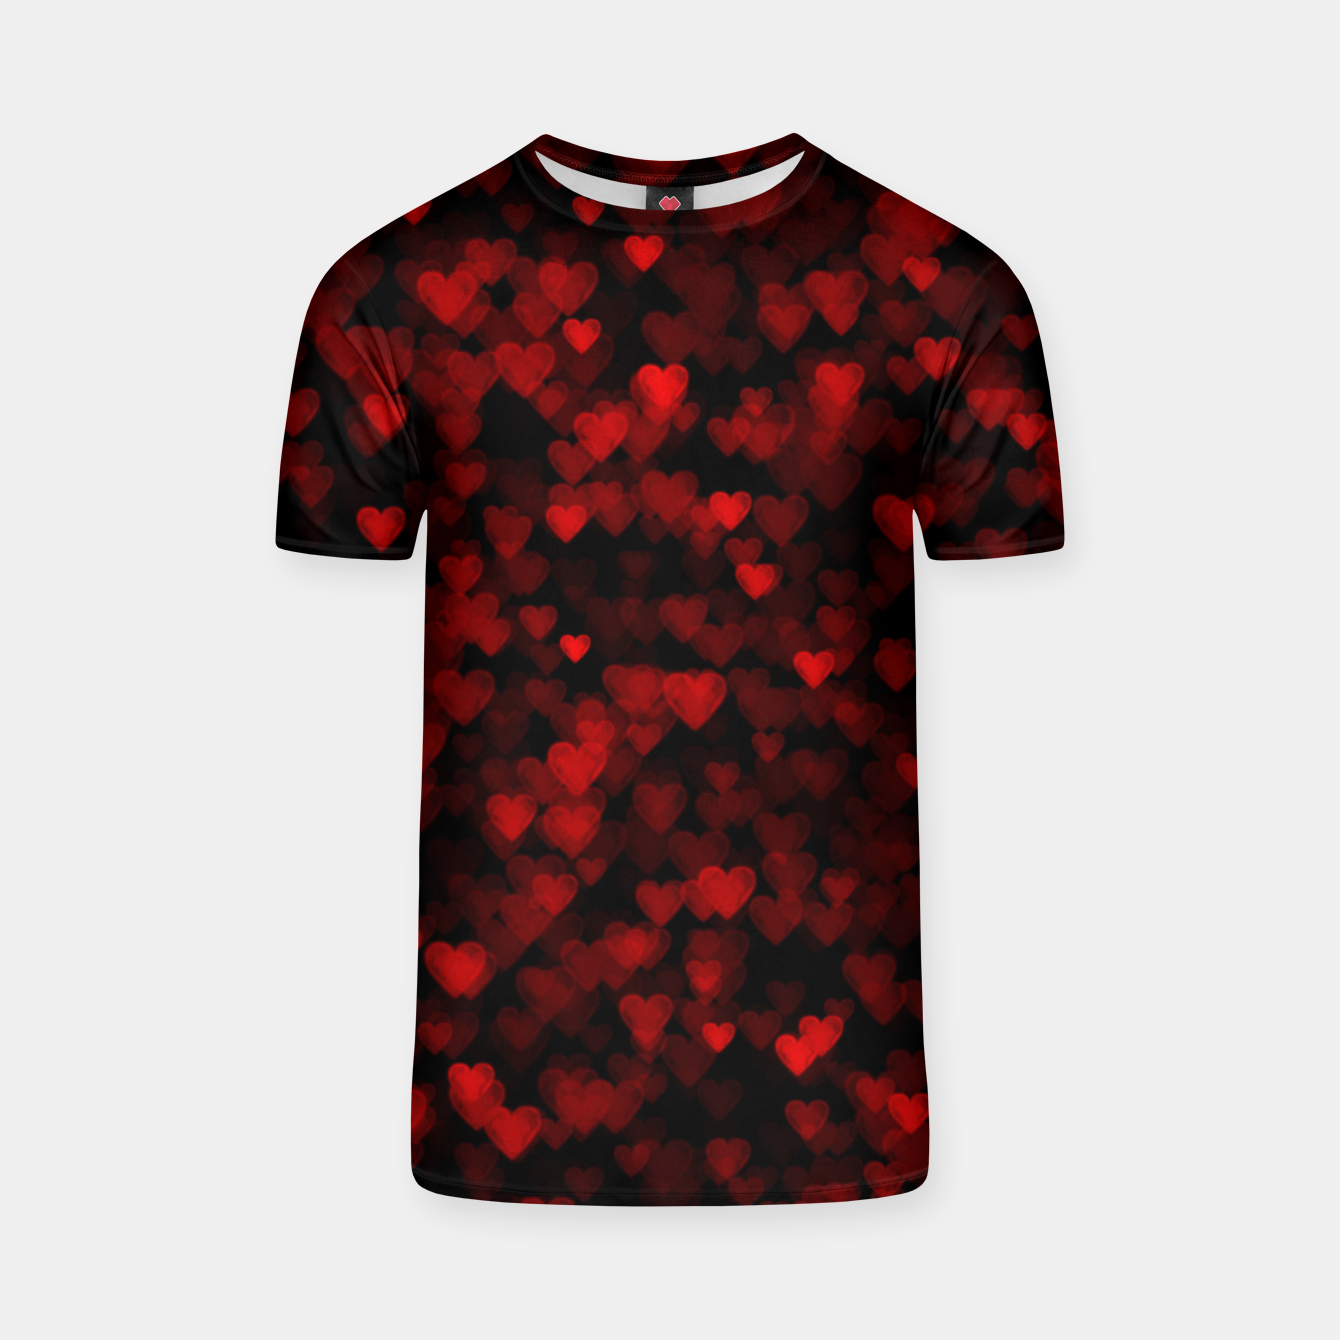 Foto Red Hearts Blurry Vision Dark Black Romantic Love T-shirt - Live Heroes